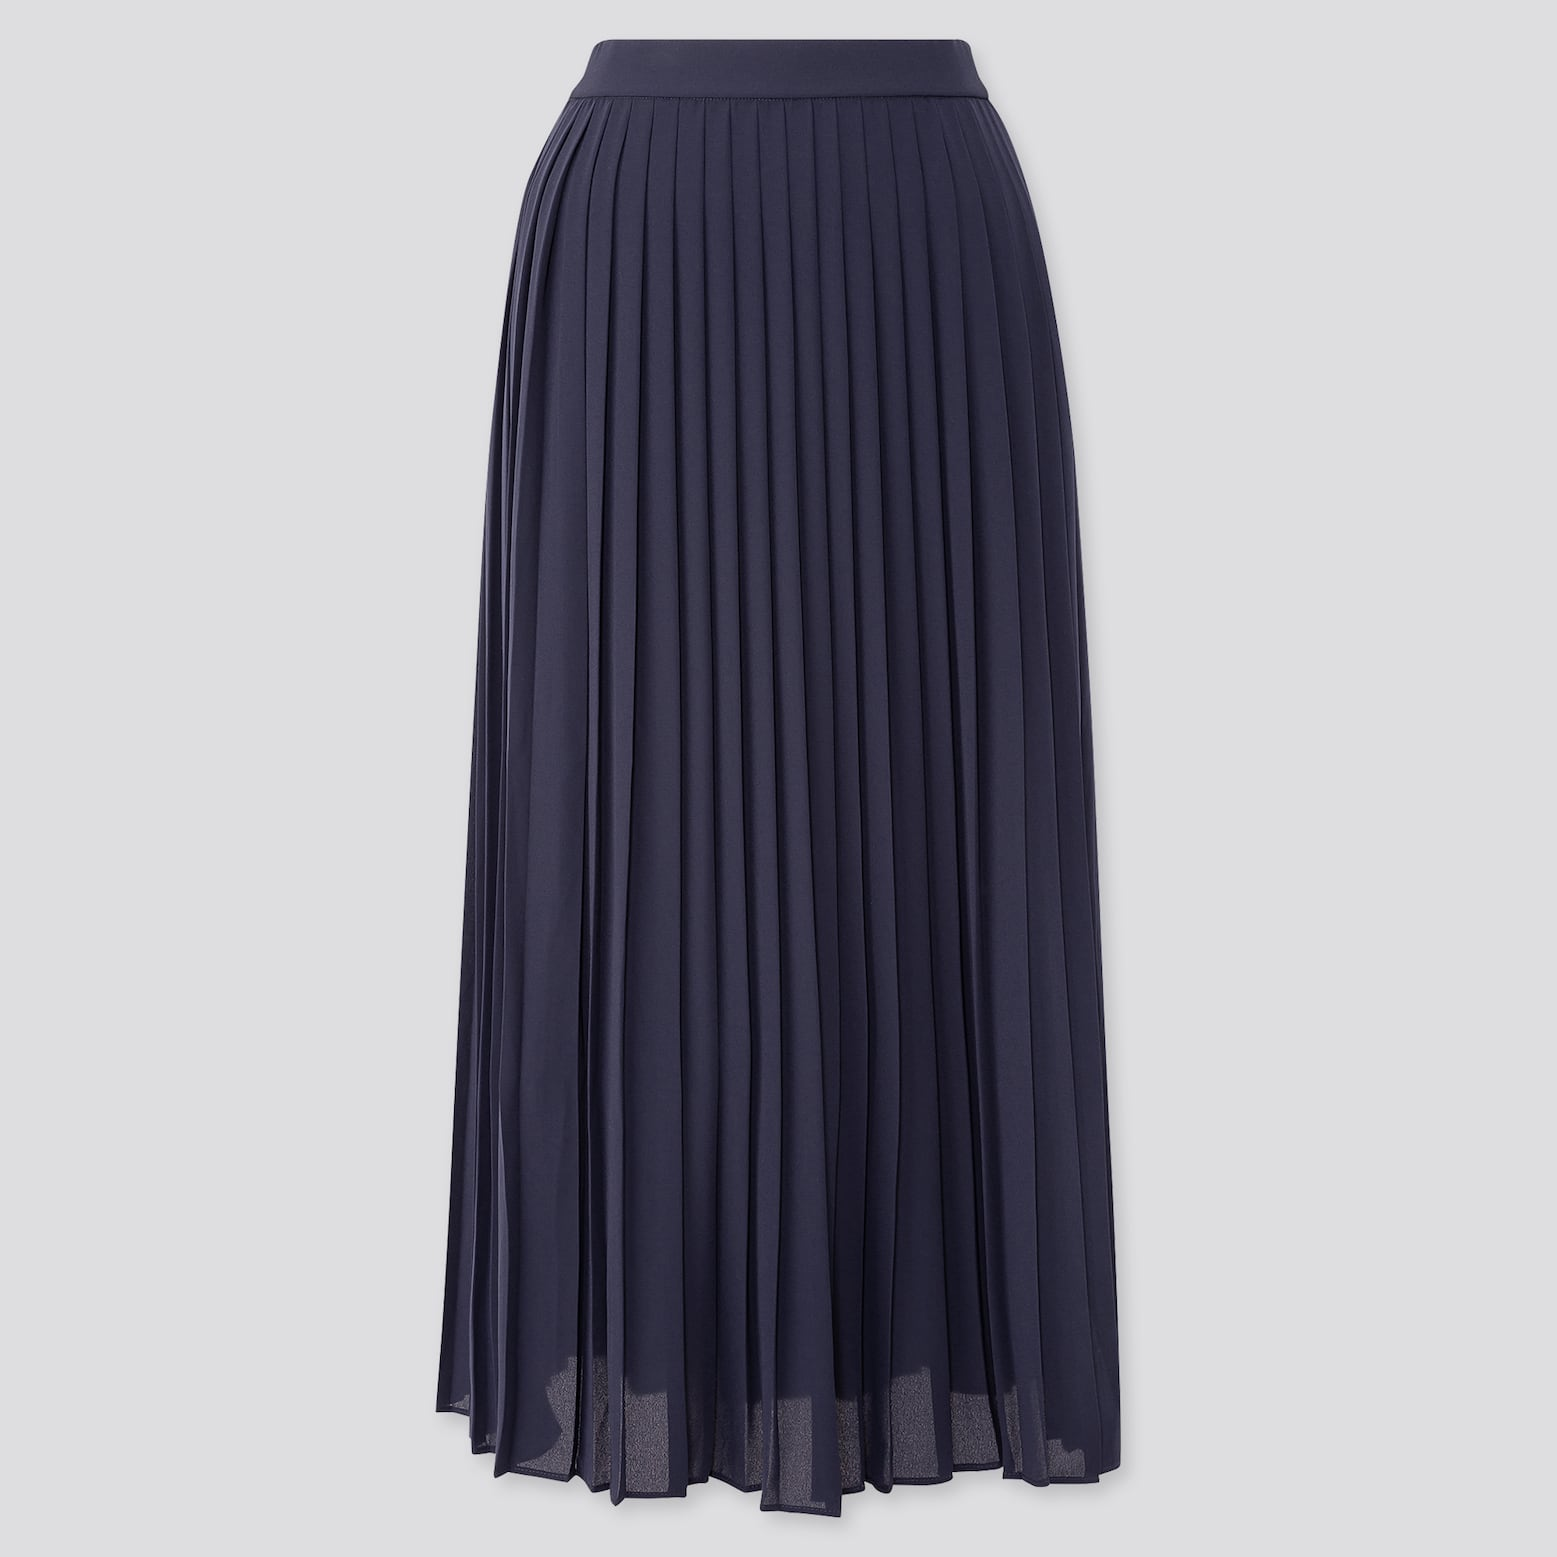 Chiffon Pleated Long Skirt by Uniqlo